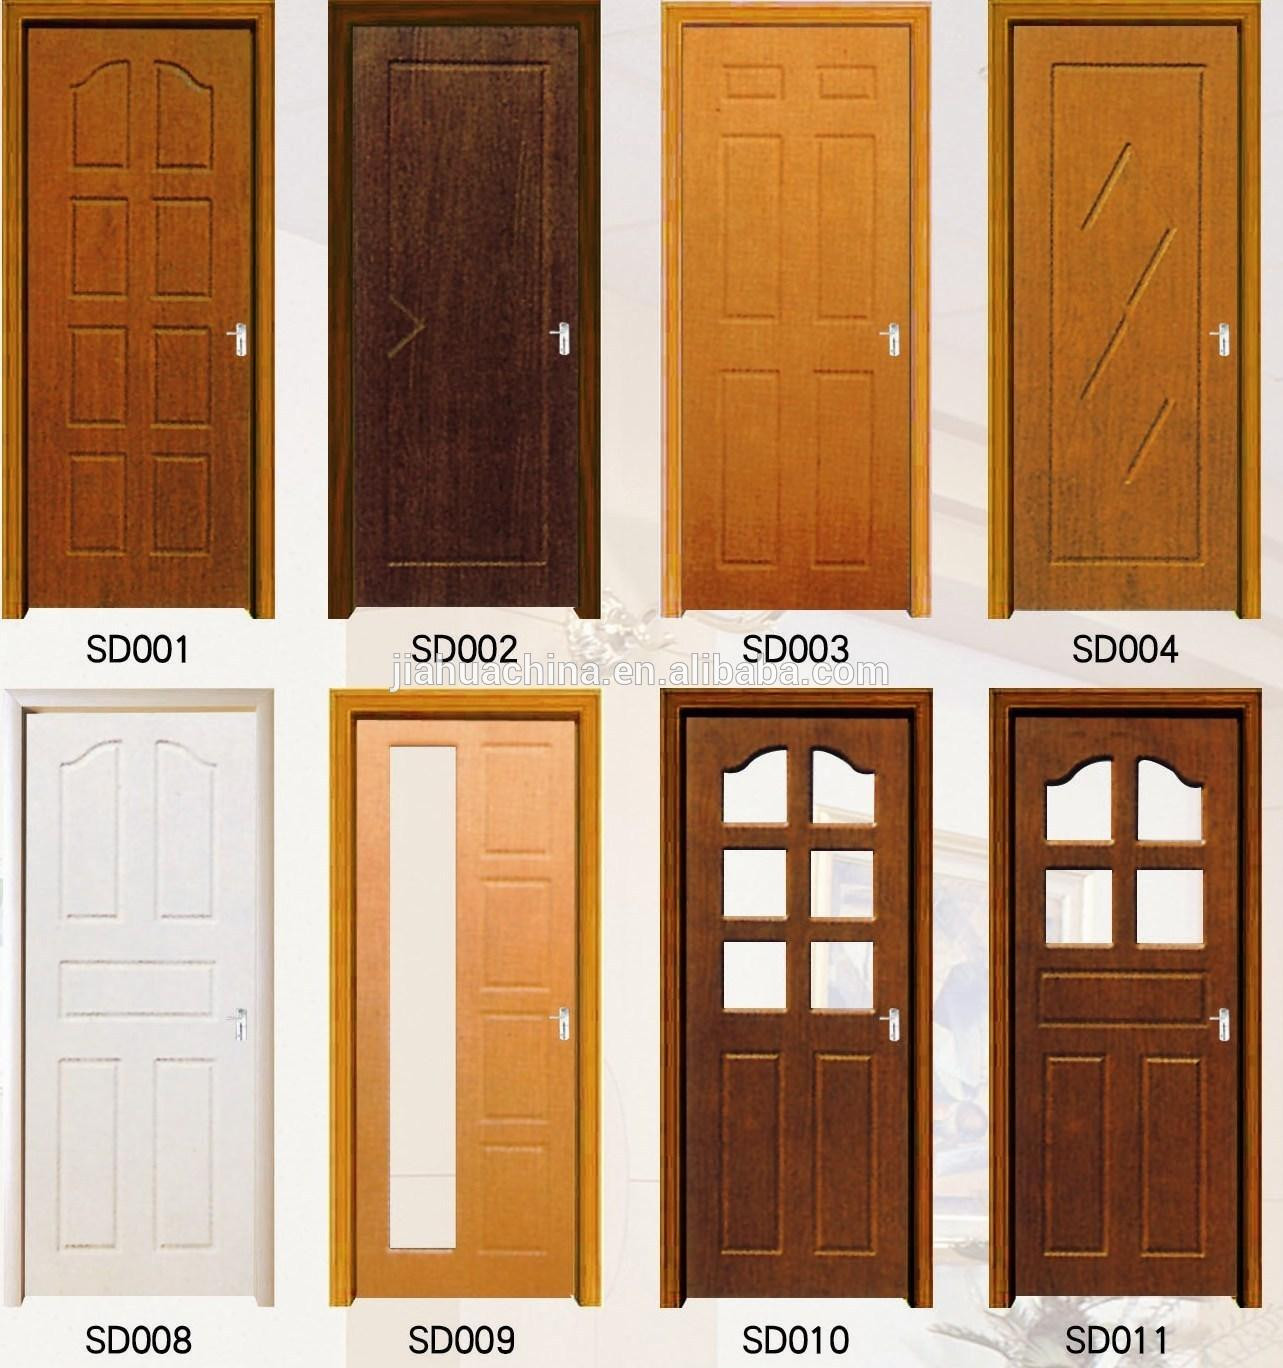 maxcare hardwood floors puyallup of wood swing sets top car designs 2019 2020 inside wood swing sets exterior or interior yongkang double doors mahogany solid wooden door with